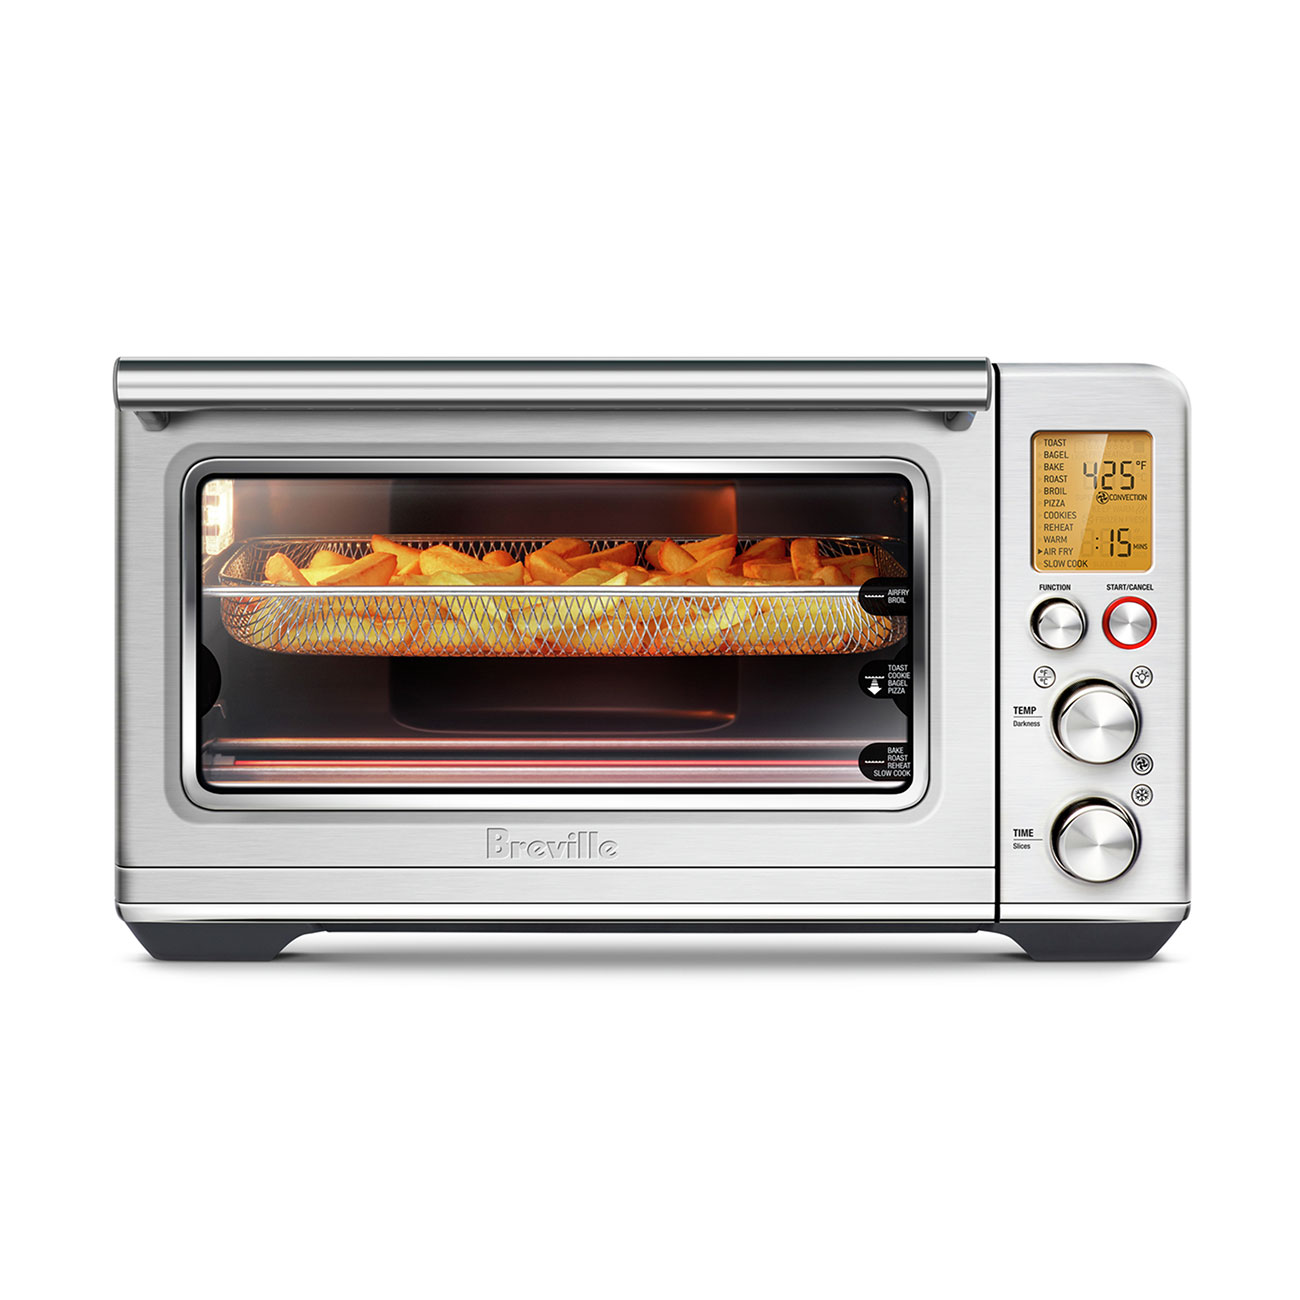 The Smart Oven Air Fryer Toaster Oven Breville